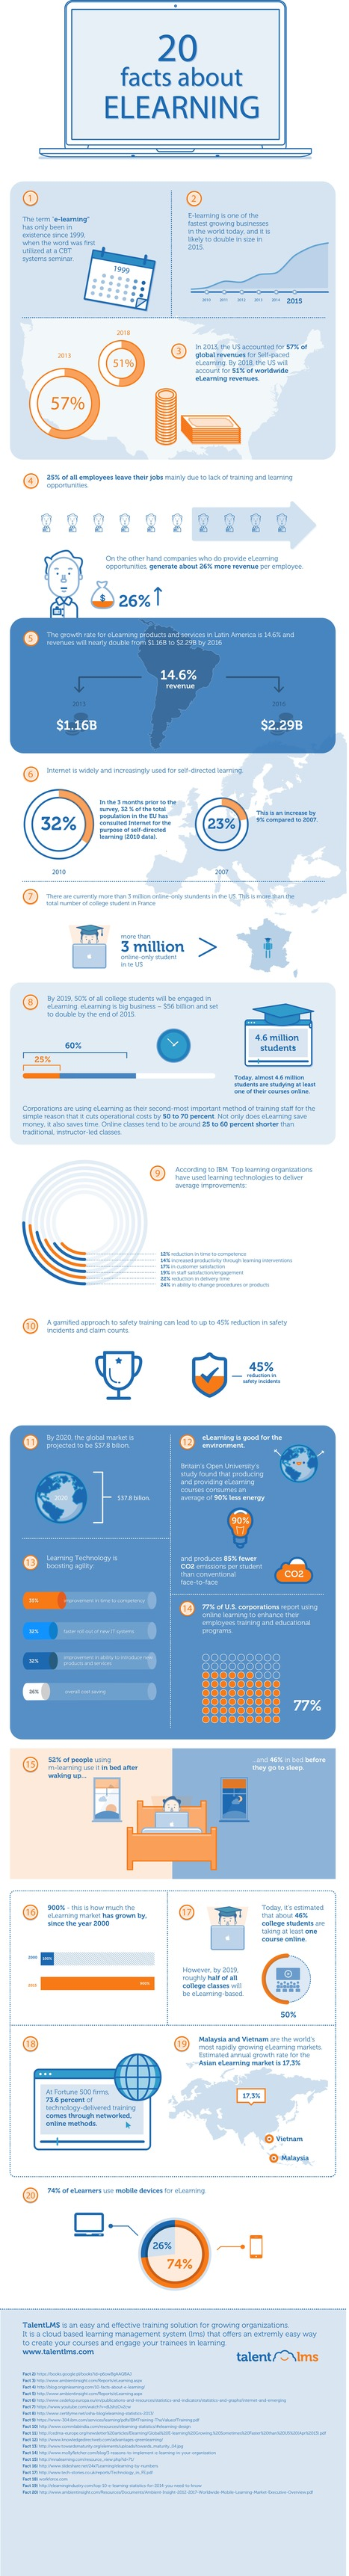 20 Facts About the Impact of E-Learning [#Infographic] | educational technology | Scoop.it